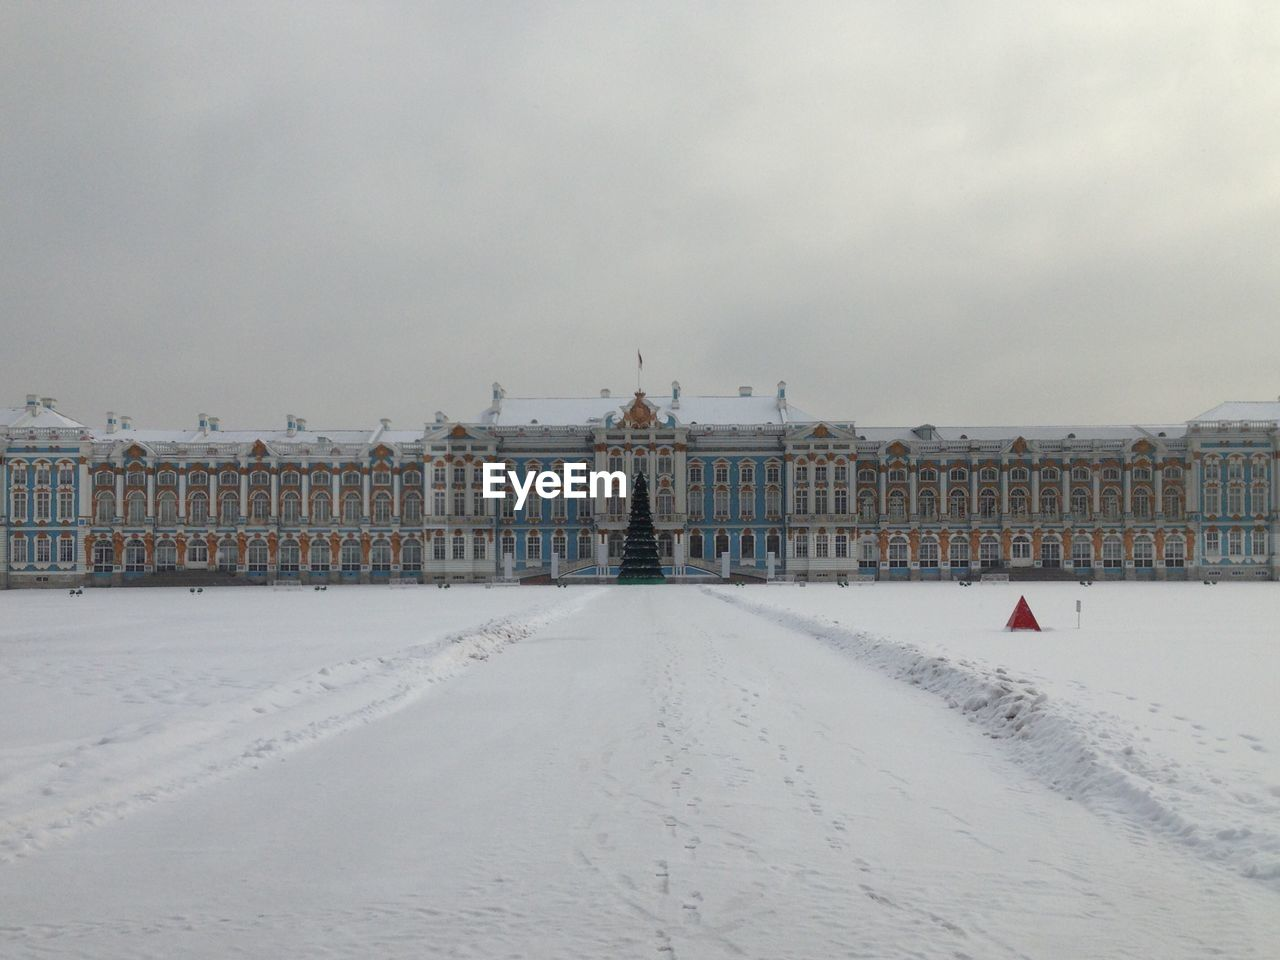 Buildings in city during winter